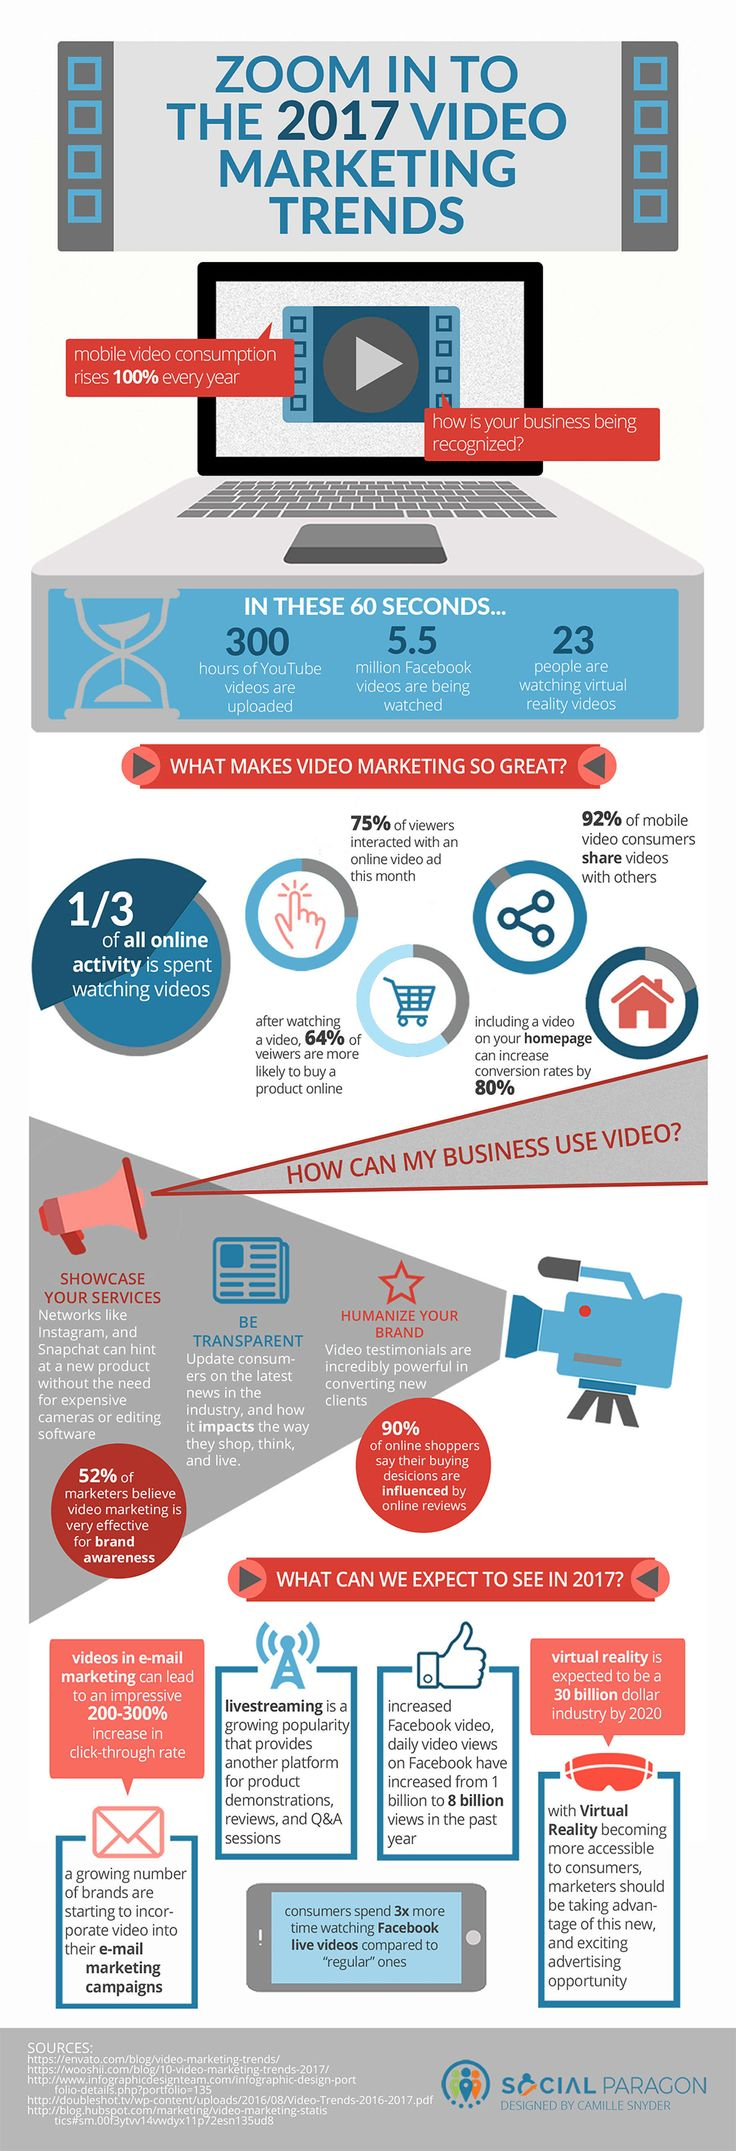 Video Marketing Trends for 2017 Why Your Business Needs It - @redwebdesign